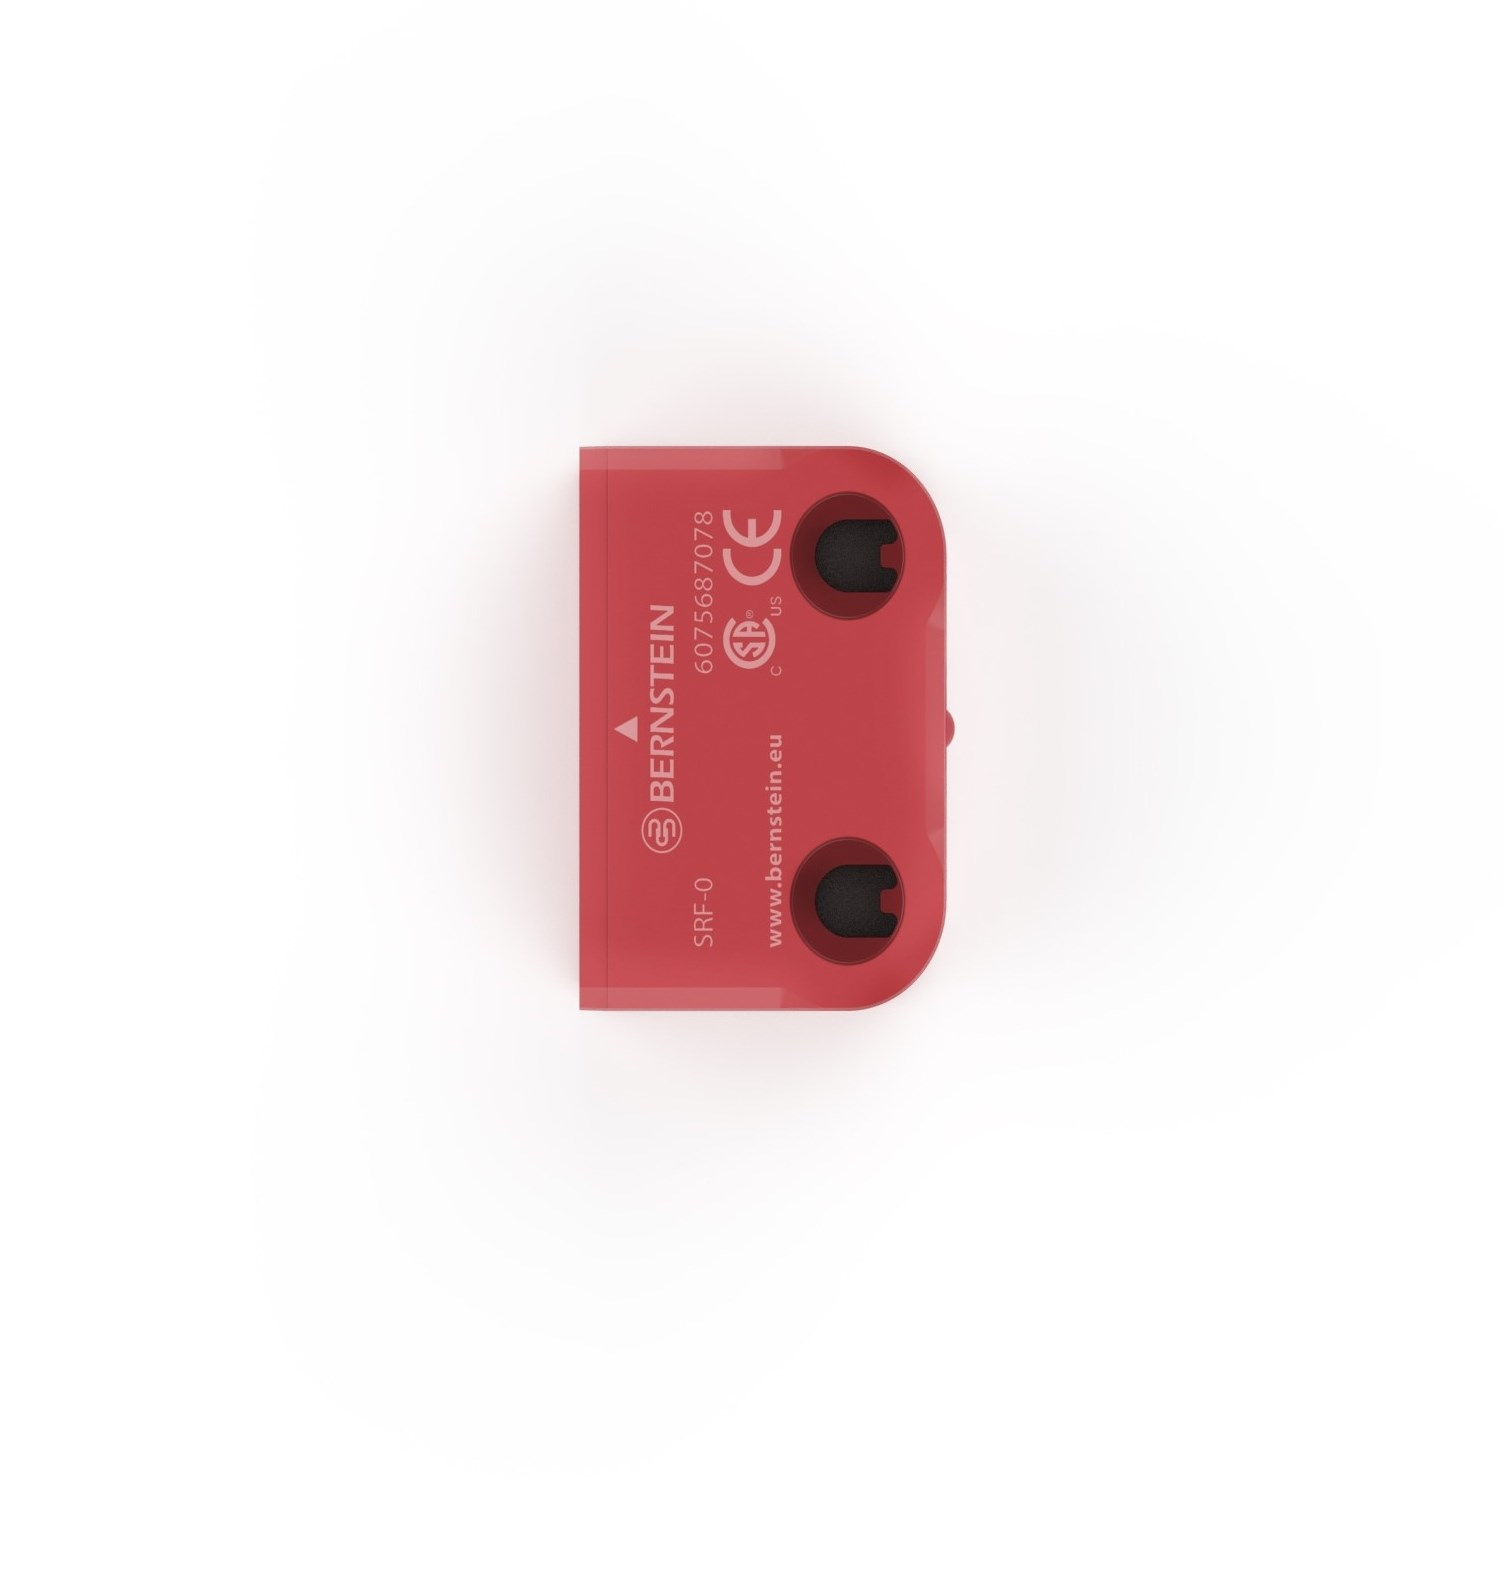 SRF-0  RFID Safety Sensor